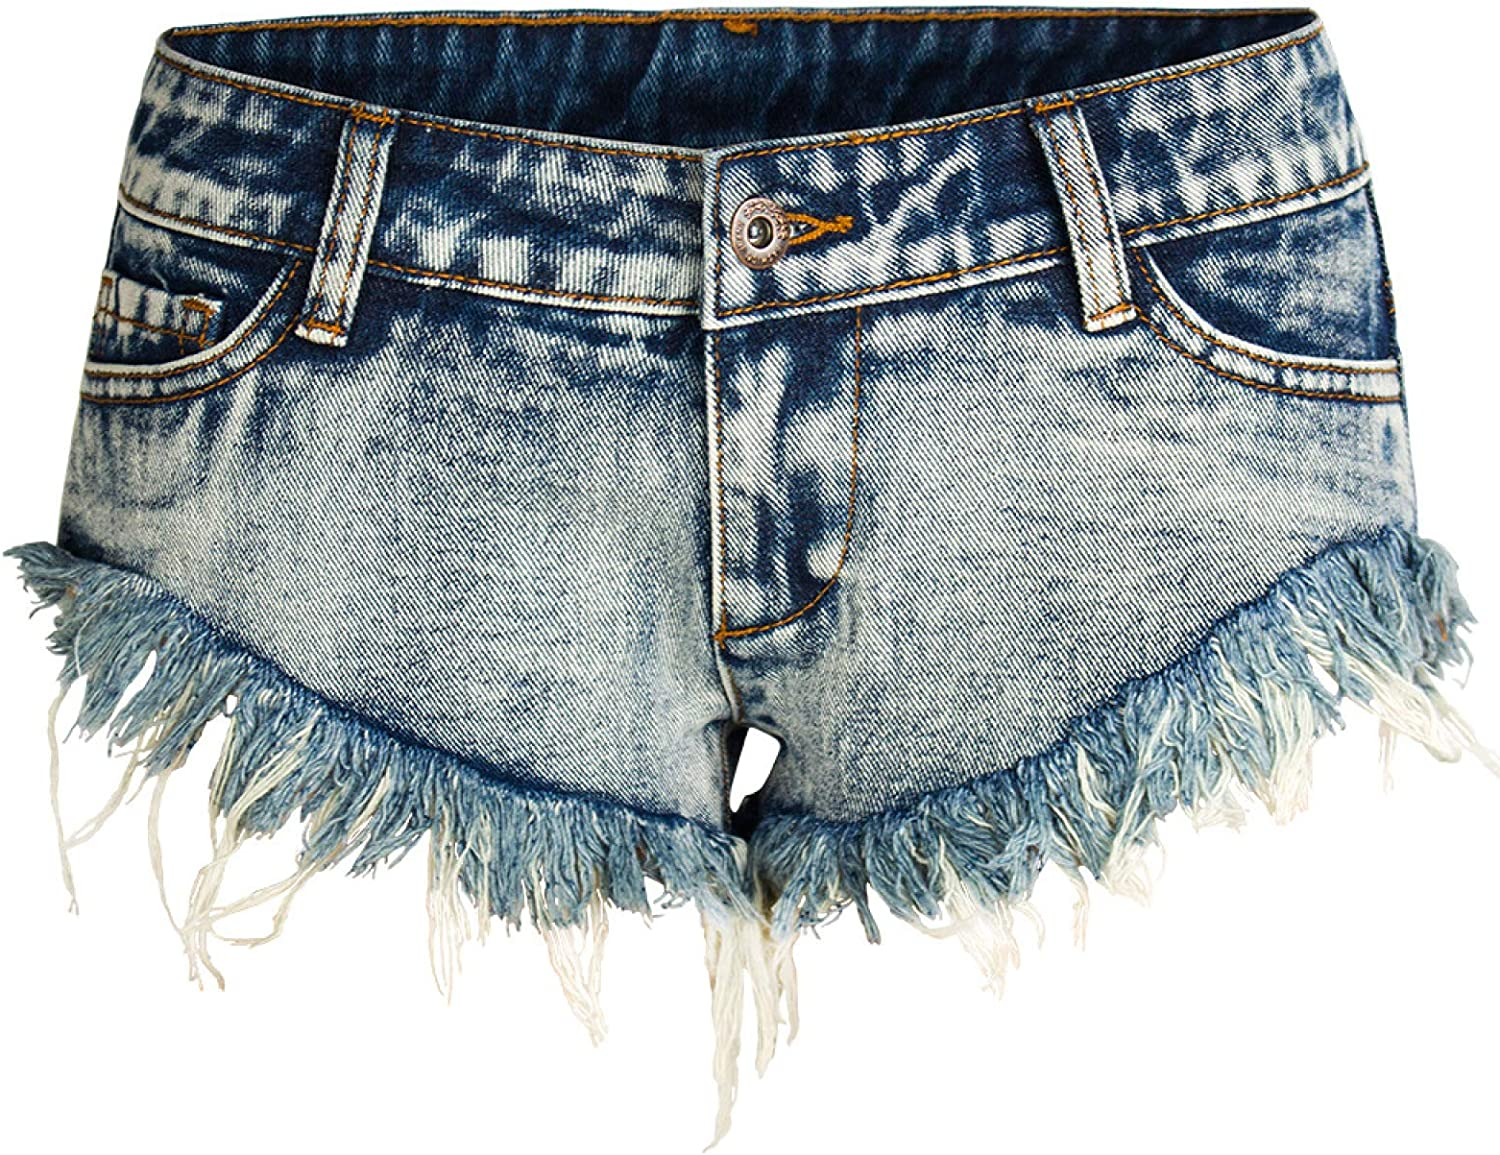 Fainash Women's Ripped Low Waist Denim Shorts Sexy Trend Retro Washed Distressed